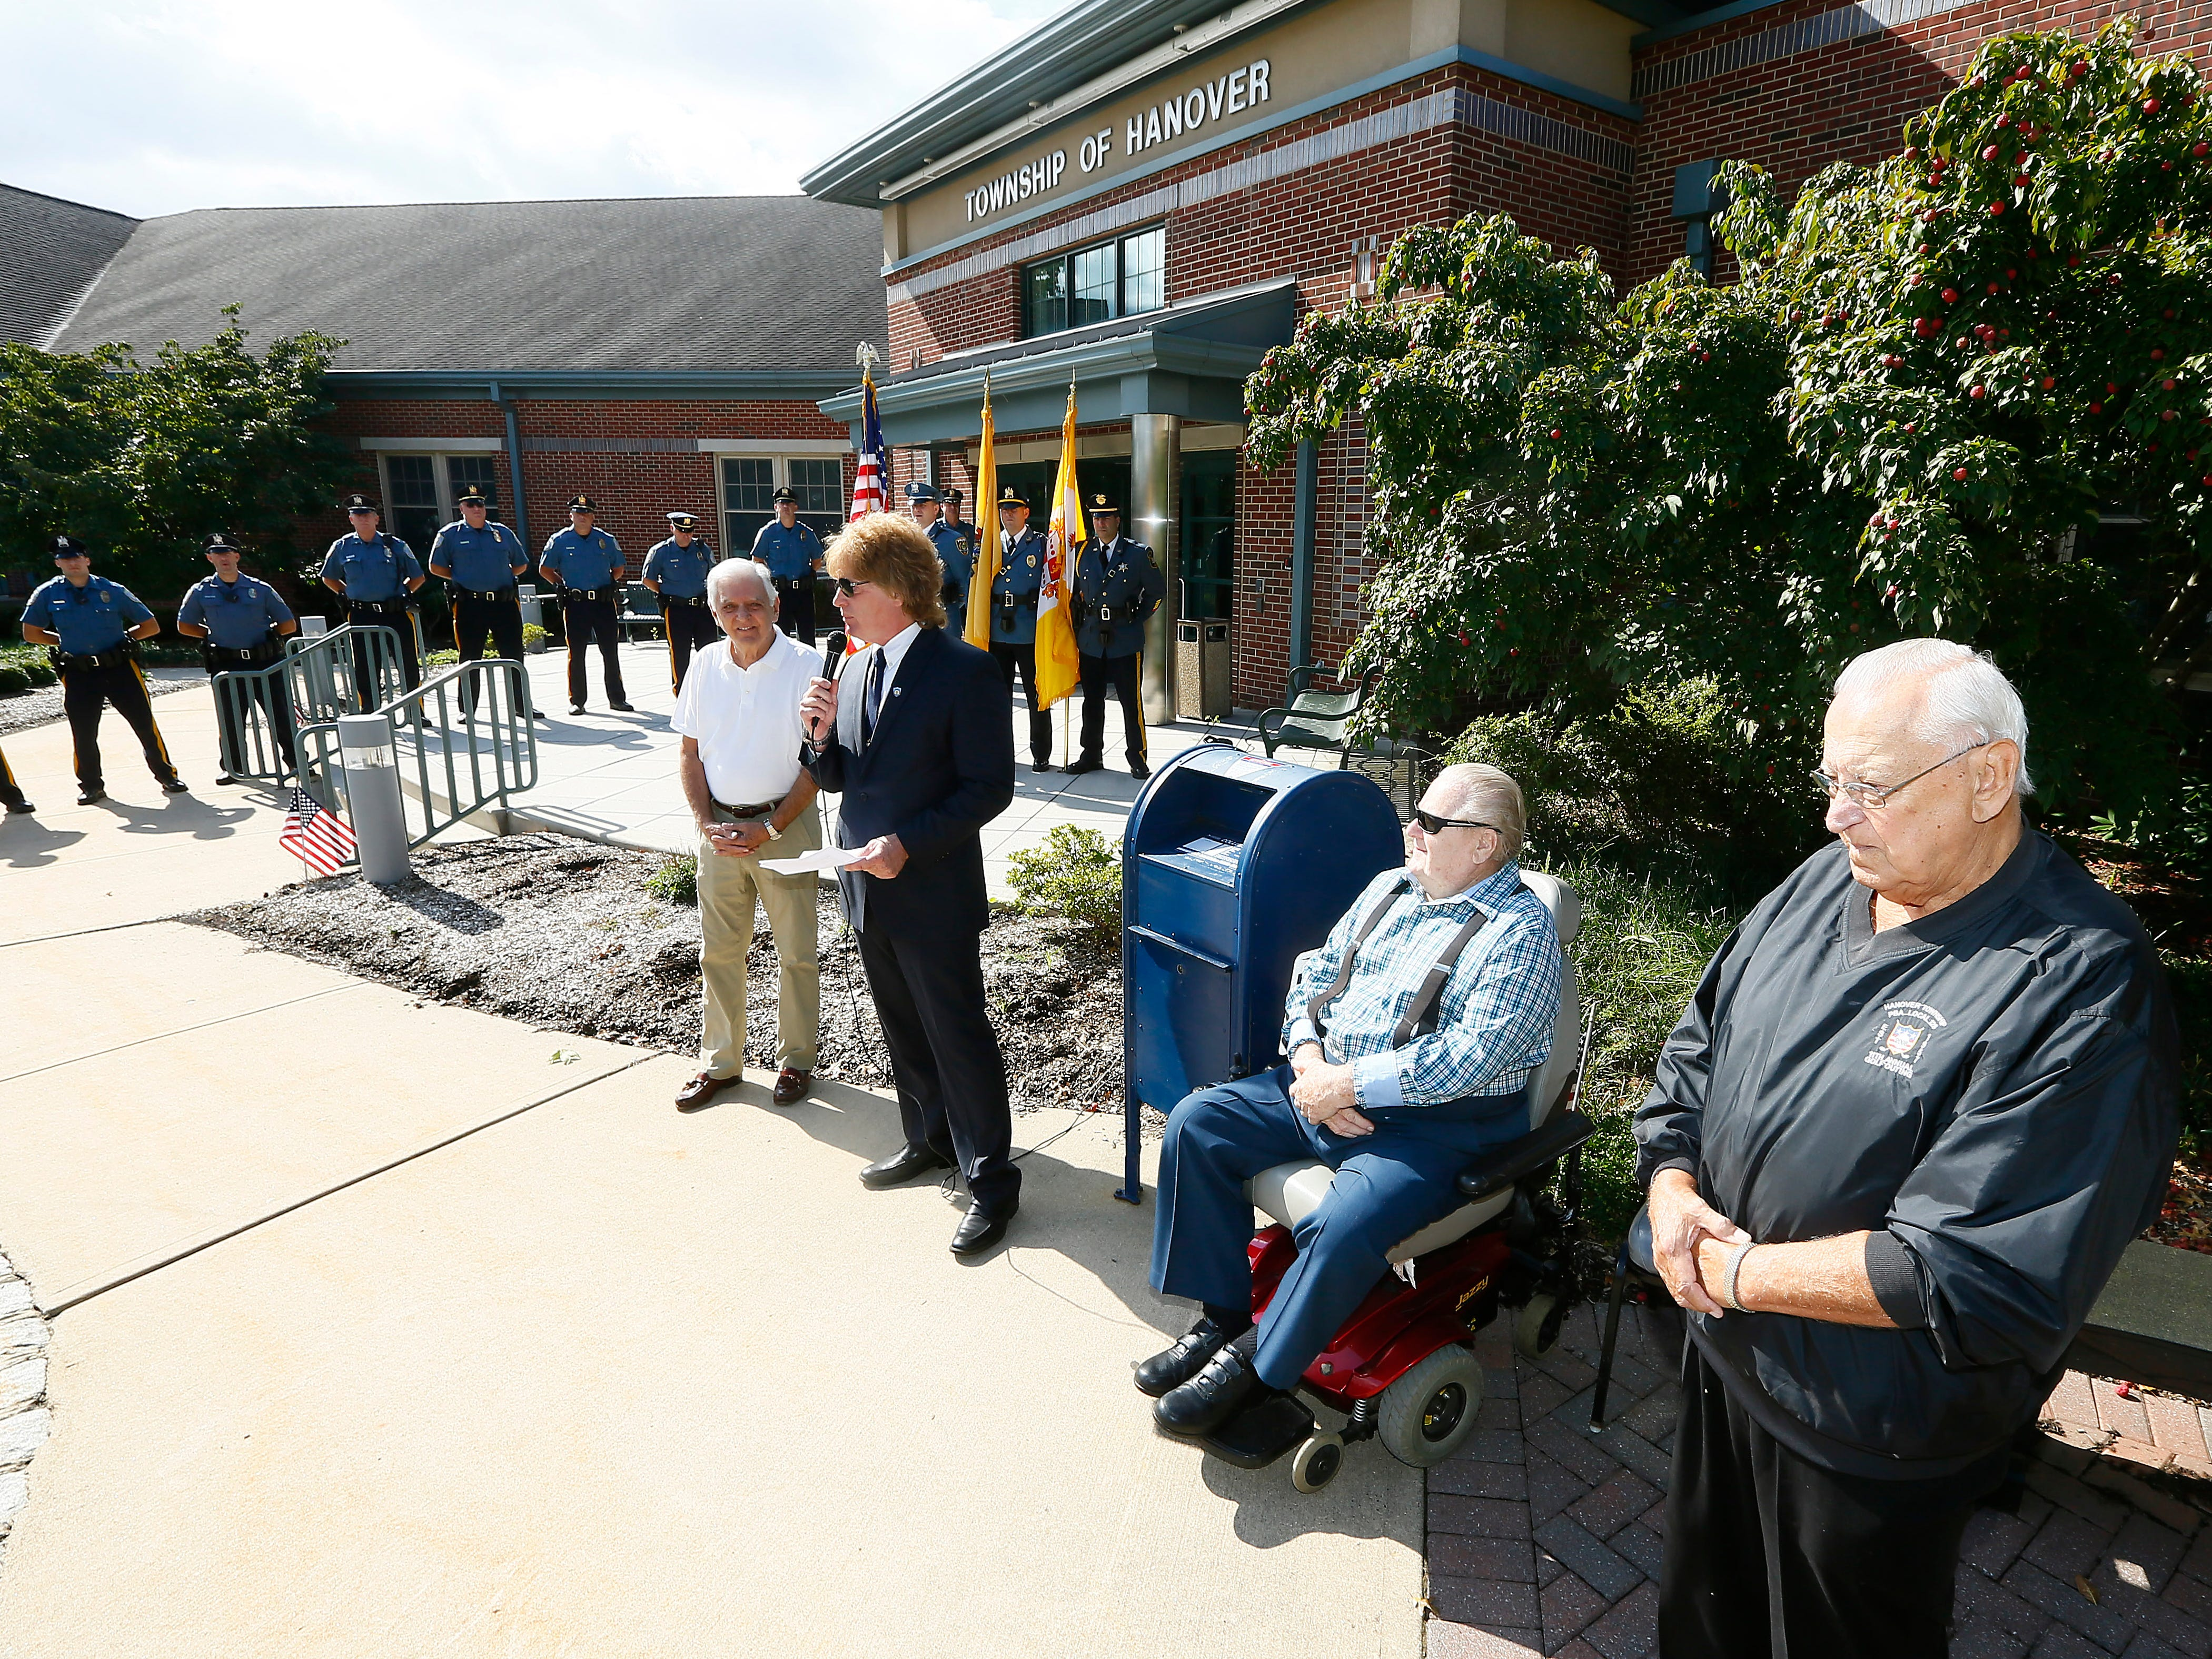 Ace Gallagher speaks at the Hanover Municipal Building during a police-style clapout for retirement of 60-year officer and crossing guard, Steve Bolcar. October 3, 2018, Hanover, NJ